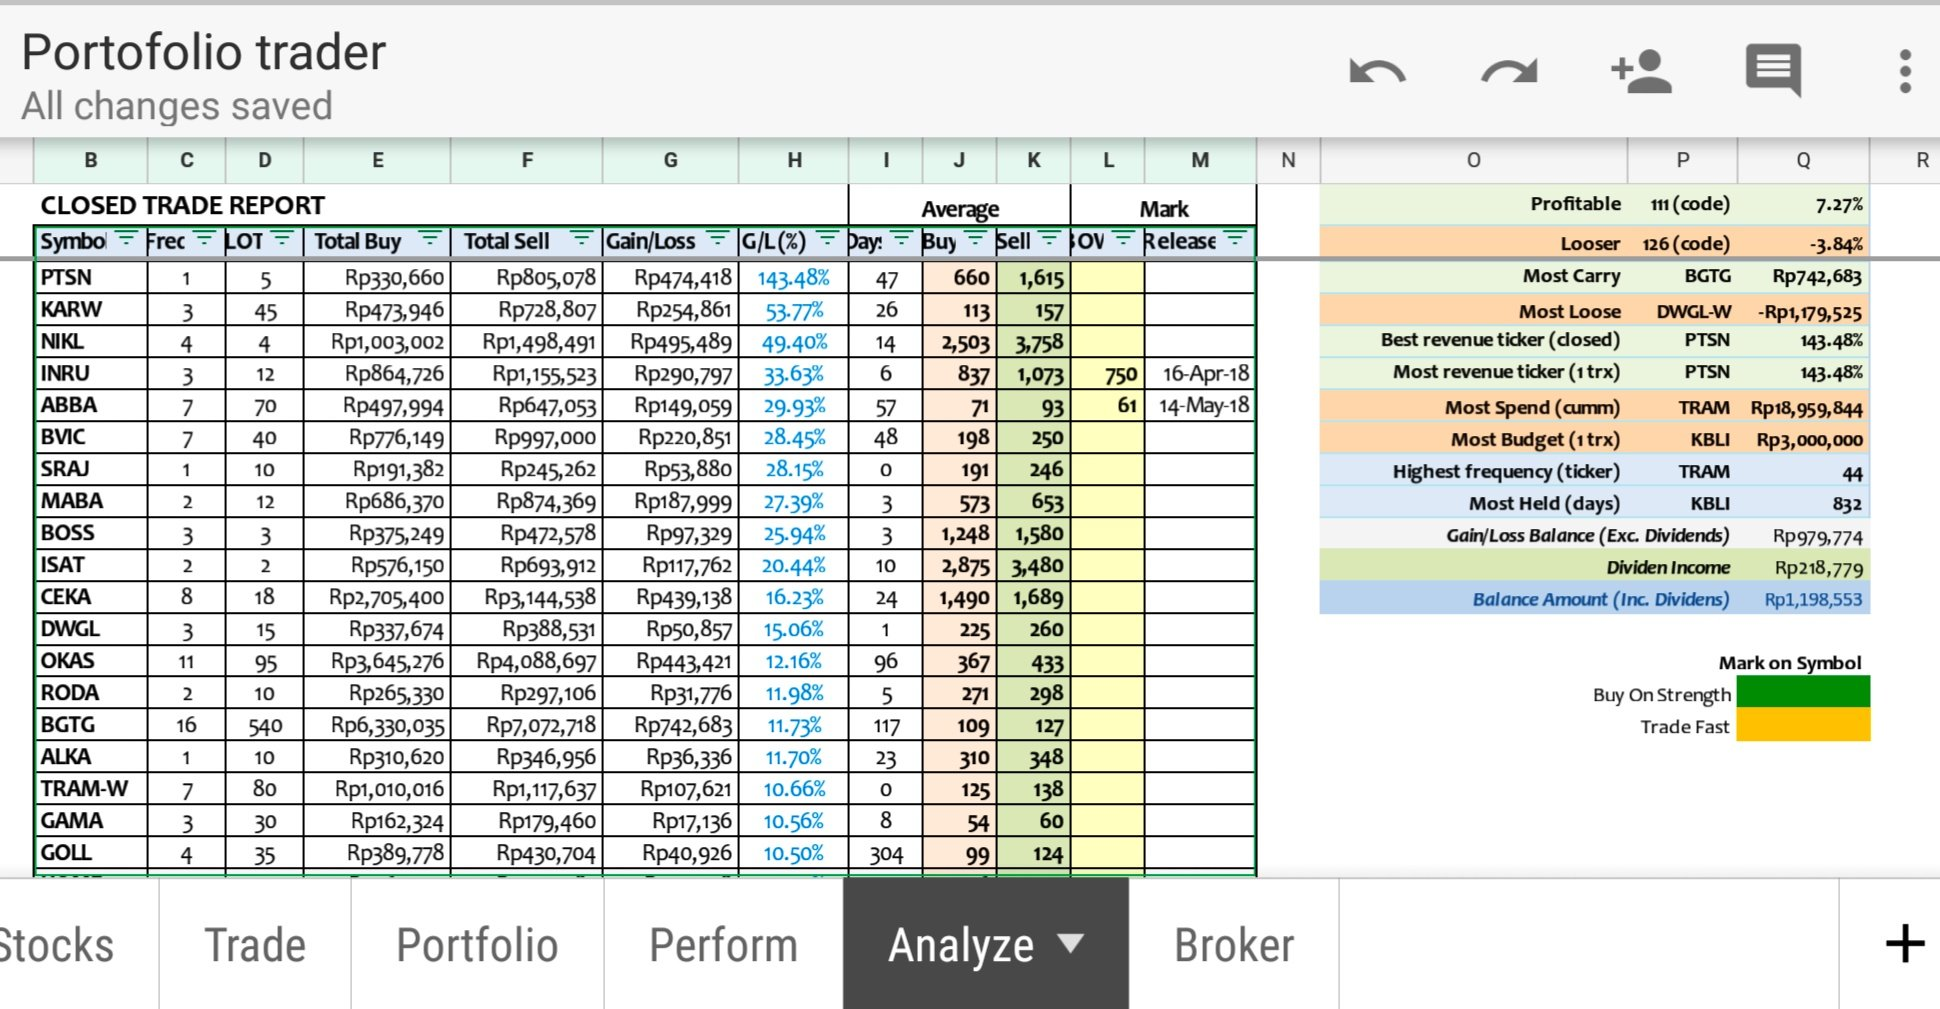 Sheet Analisa Catatan Portofolio trader Saham Base on Excel Sheet Version